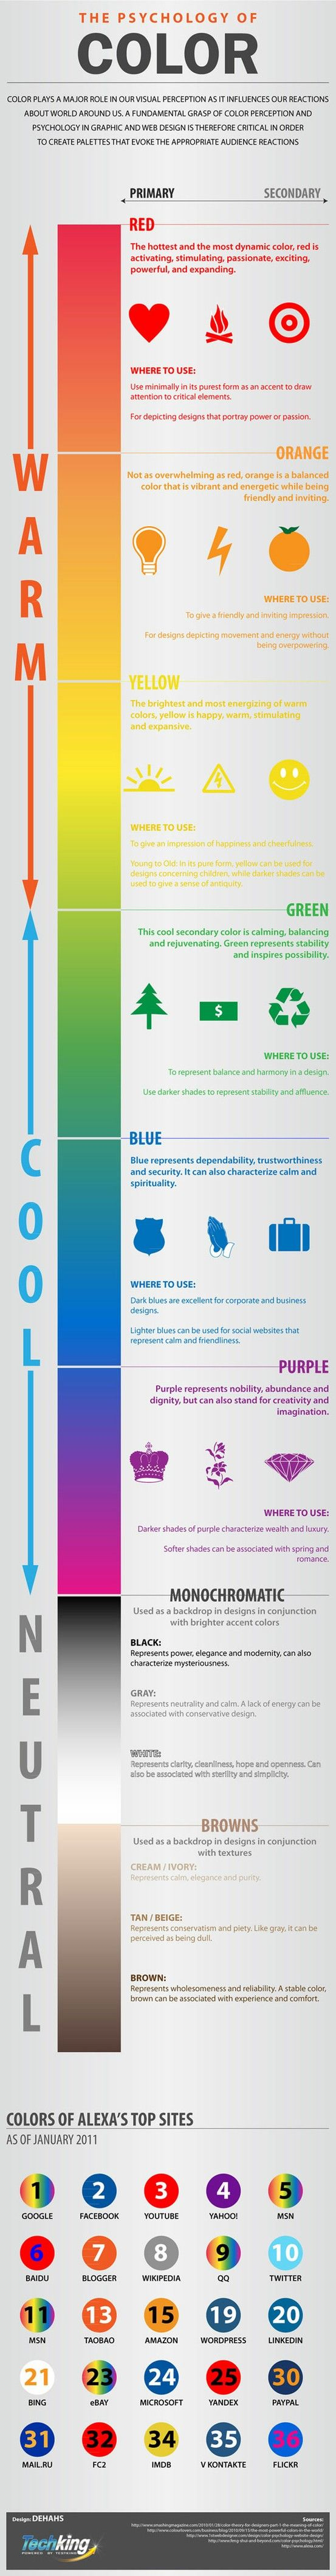 Digital Design / The psychology of color for web designers [infographic] - Holy Kaw!